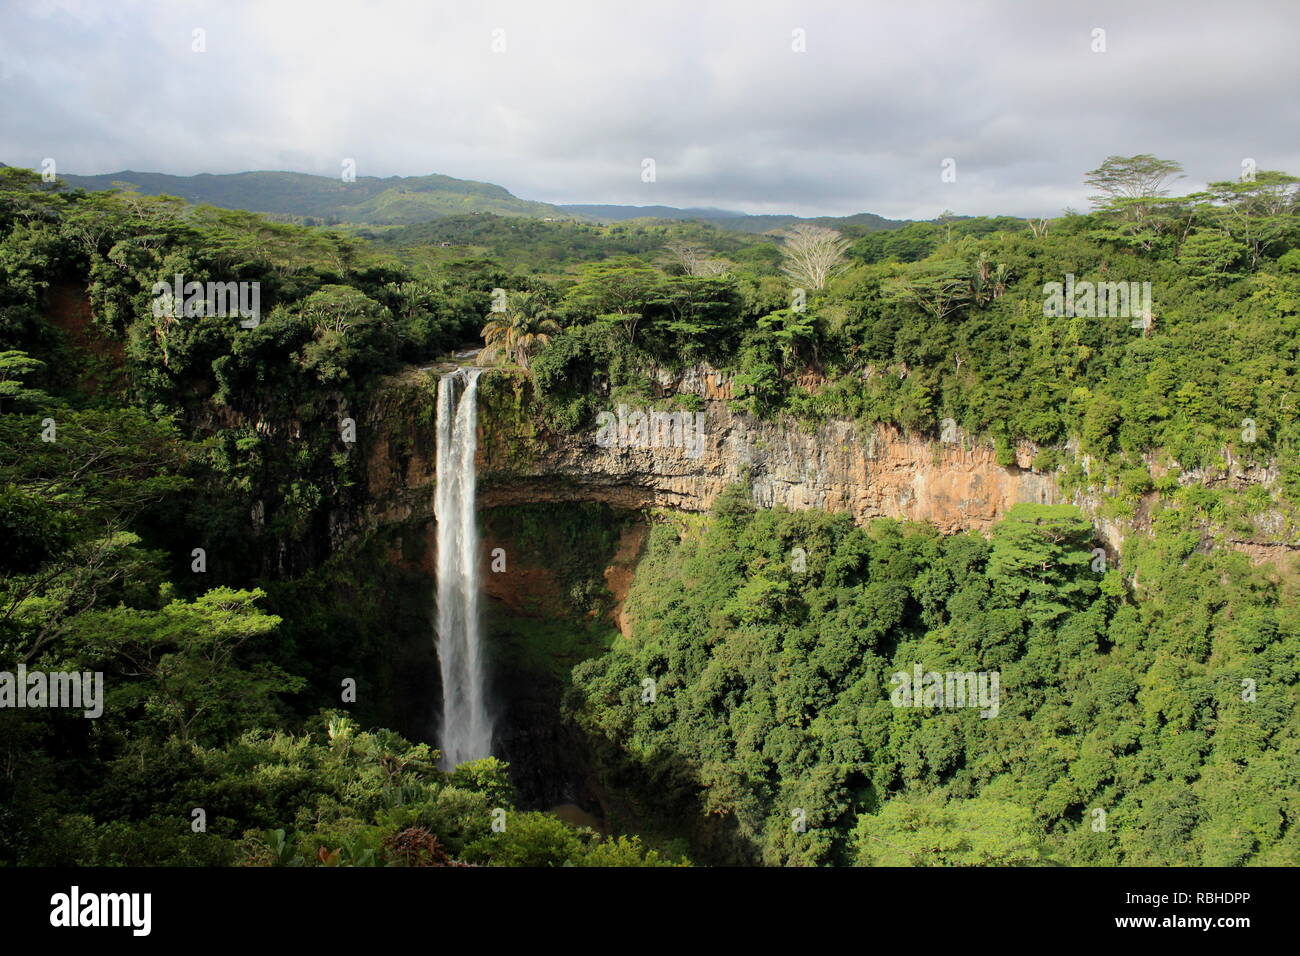 Chamarel waterfall, the highest waterfall in Mauritius - Stock Image